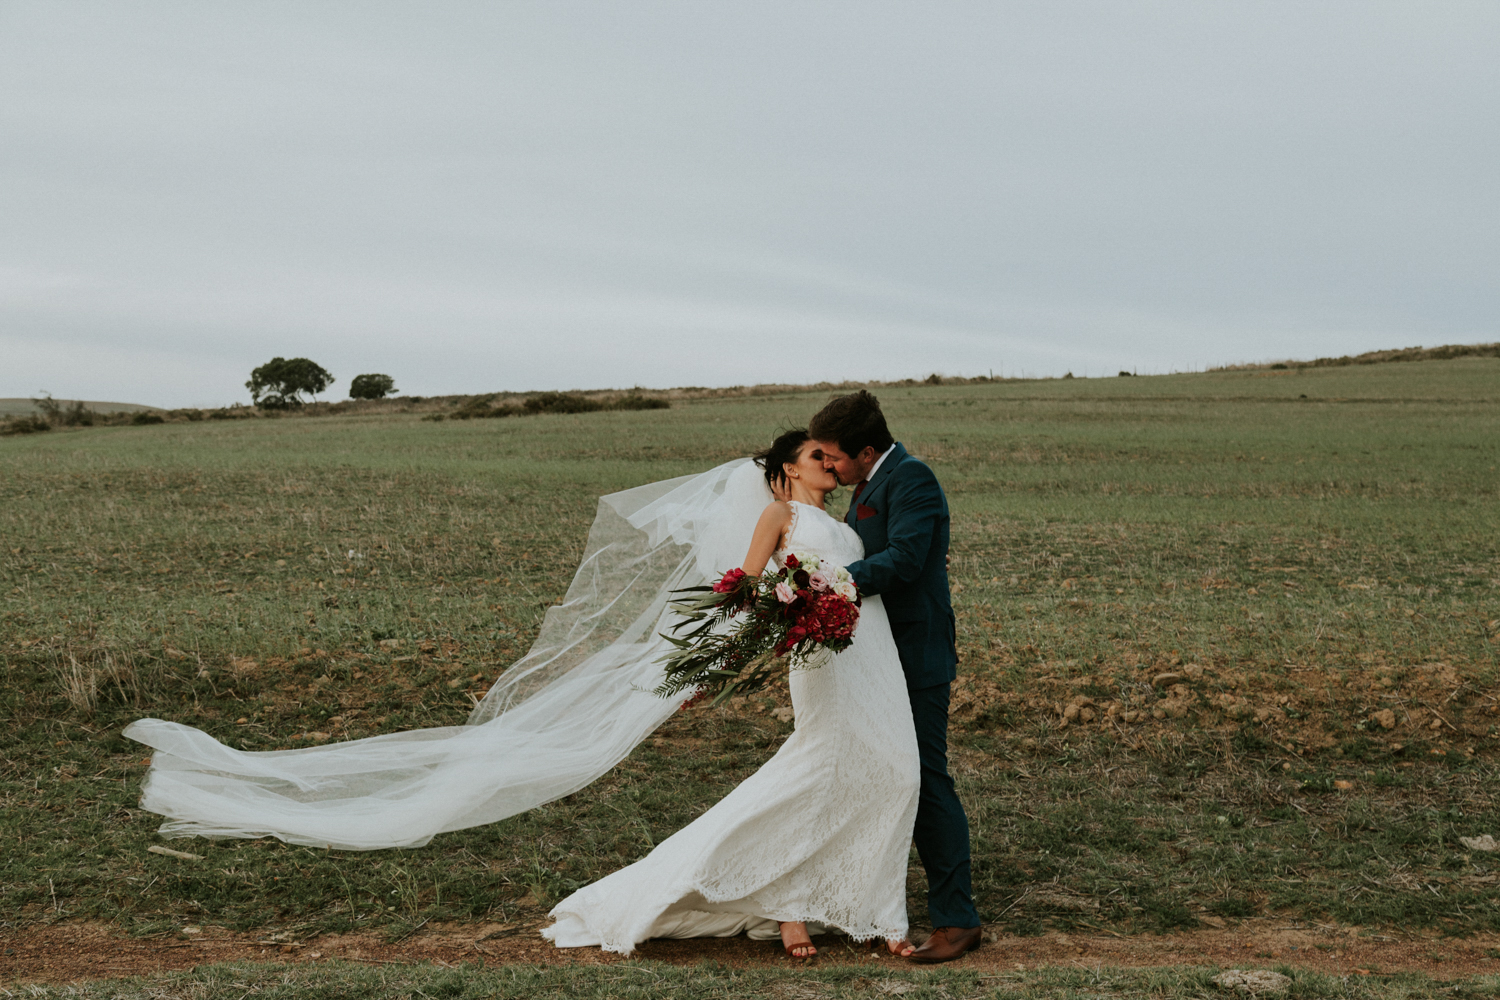 Cape Town Winter Wedding - Bianca Asher Photography-98.jpg